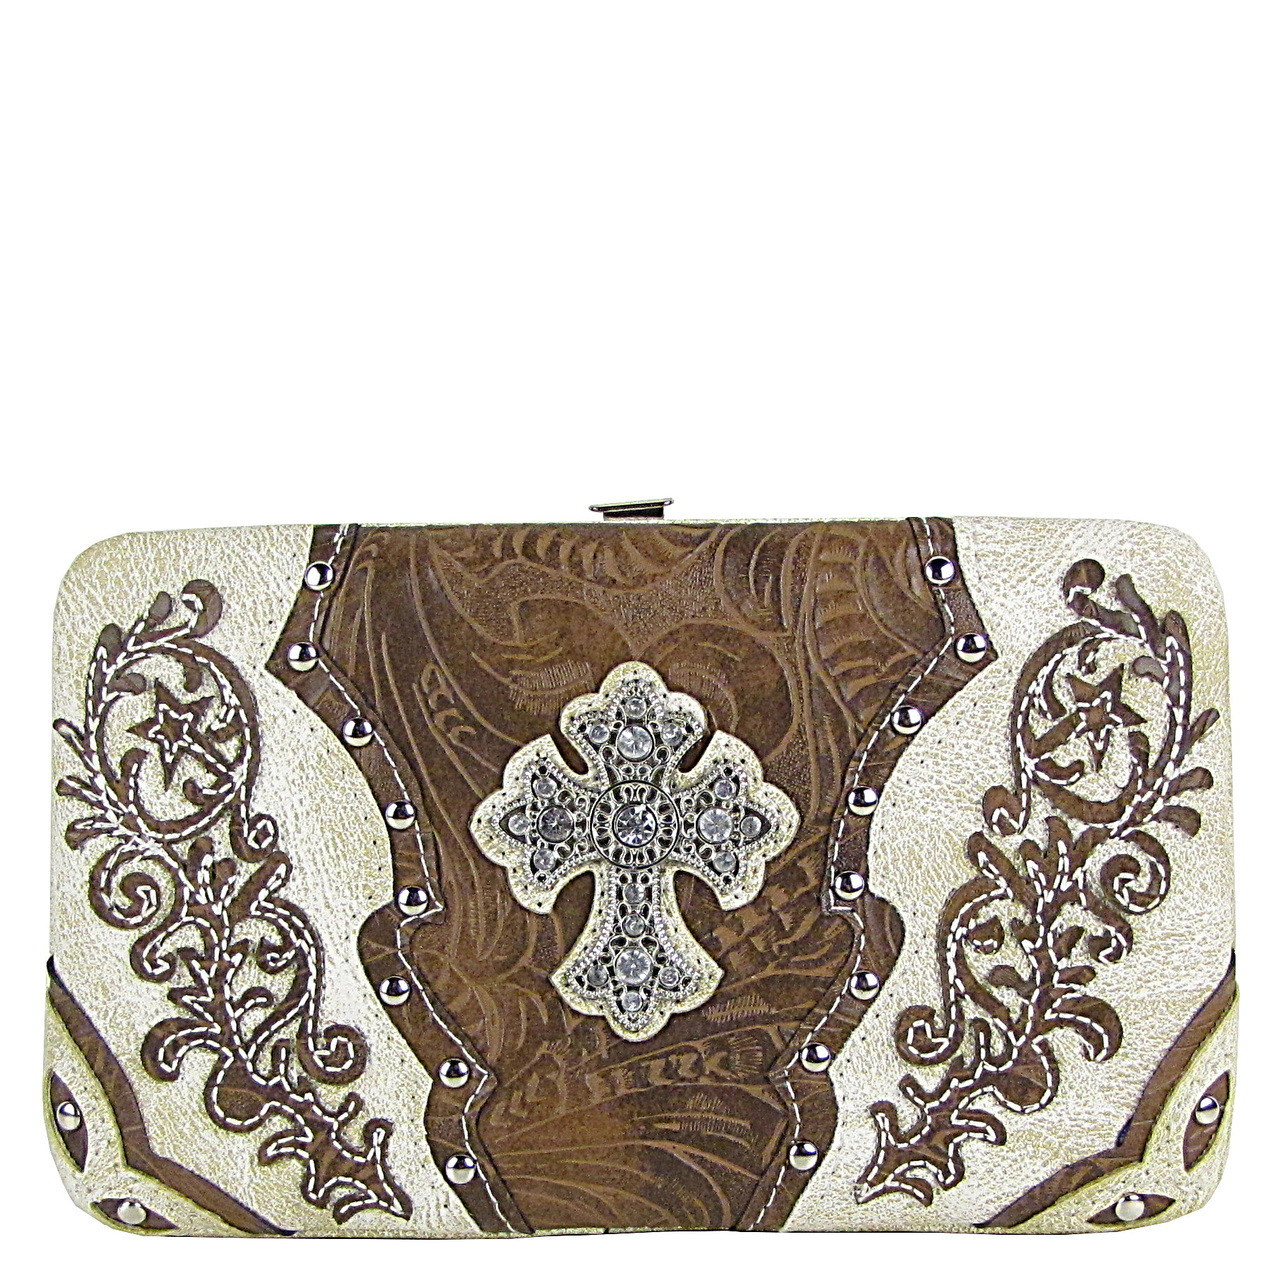 BEIGE STUDDED RHINESTONE TOOLED CROSS LOOK FLAT THICK WALLET FW2-04121BEI